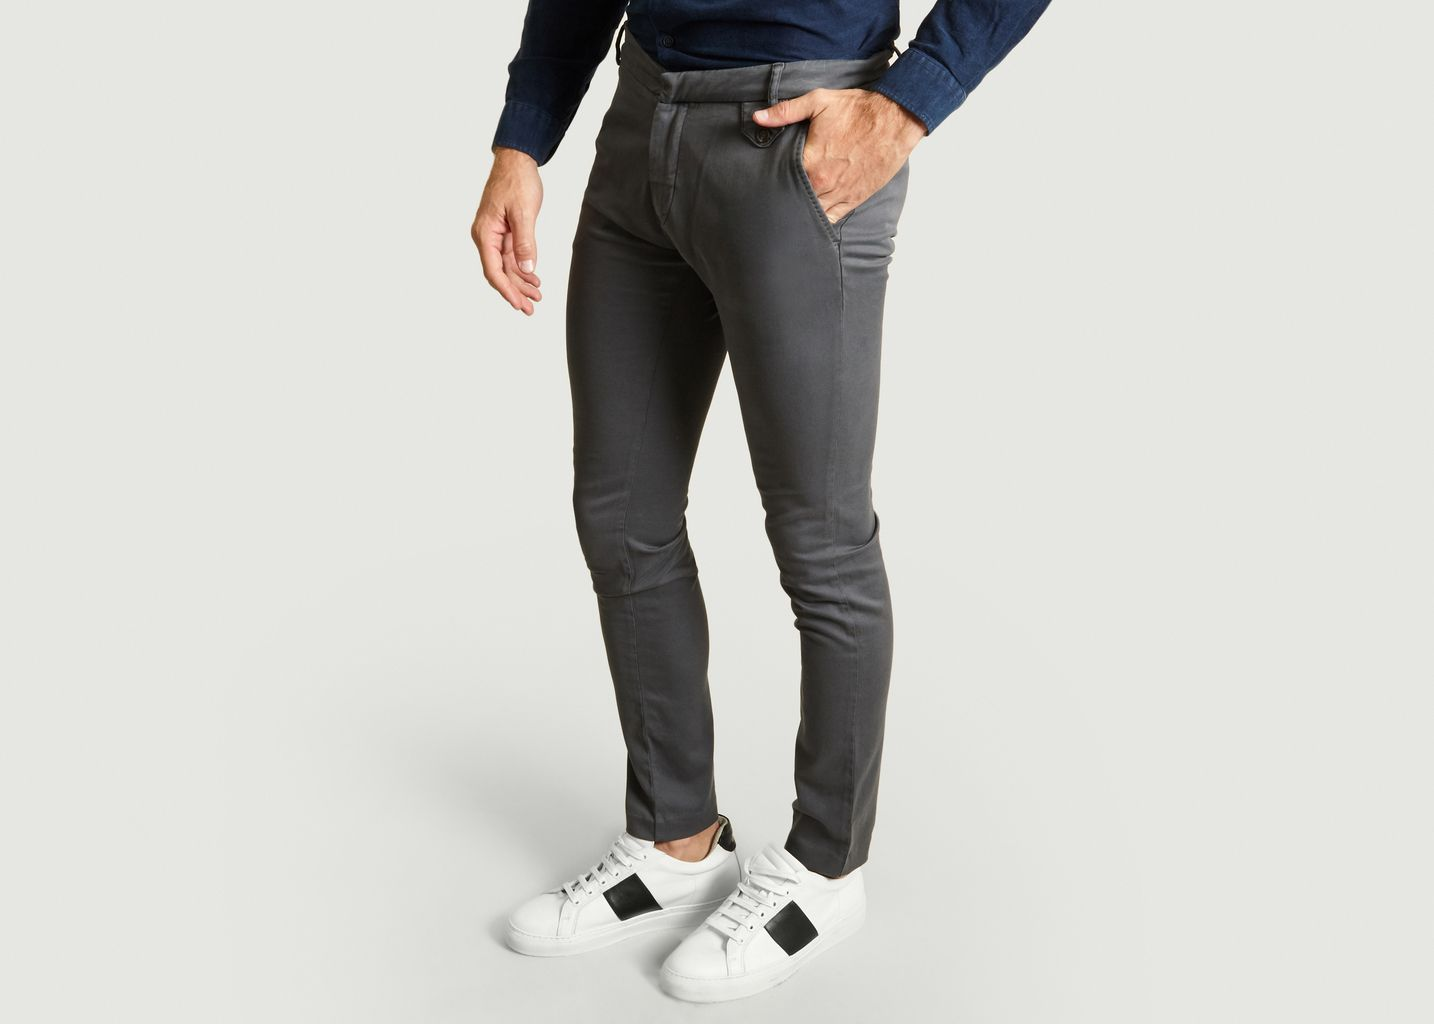 City Pant 1 - JagVi